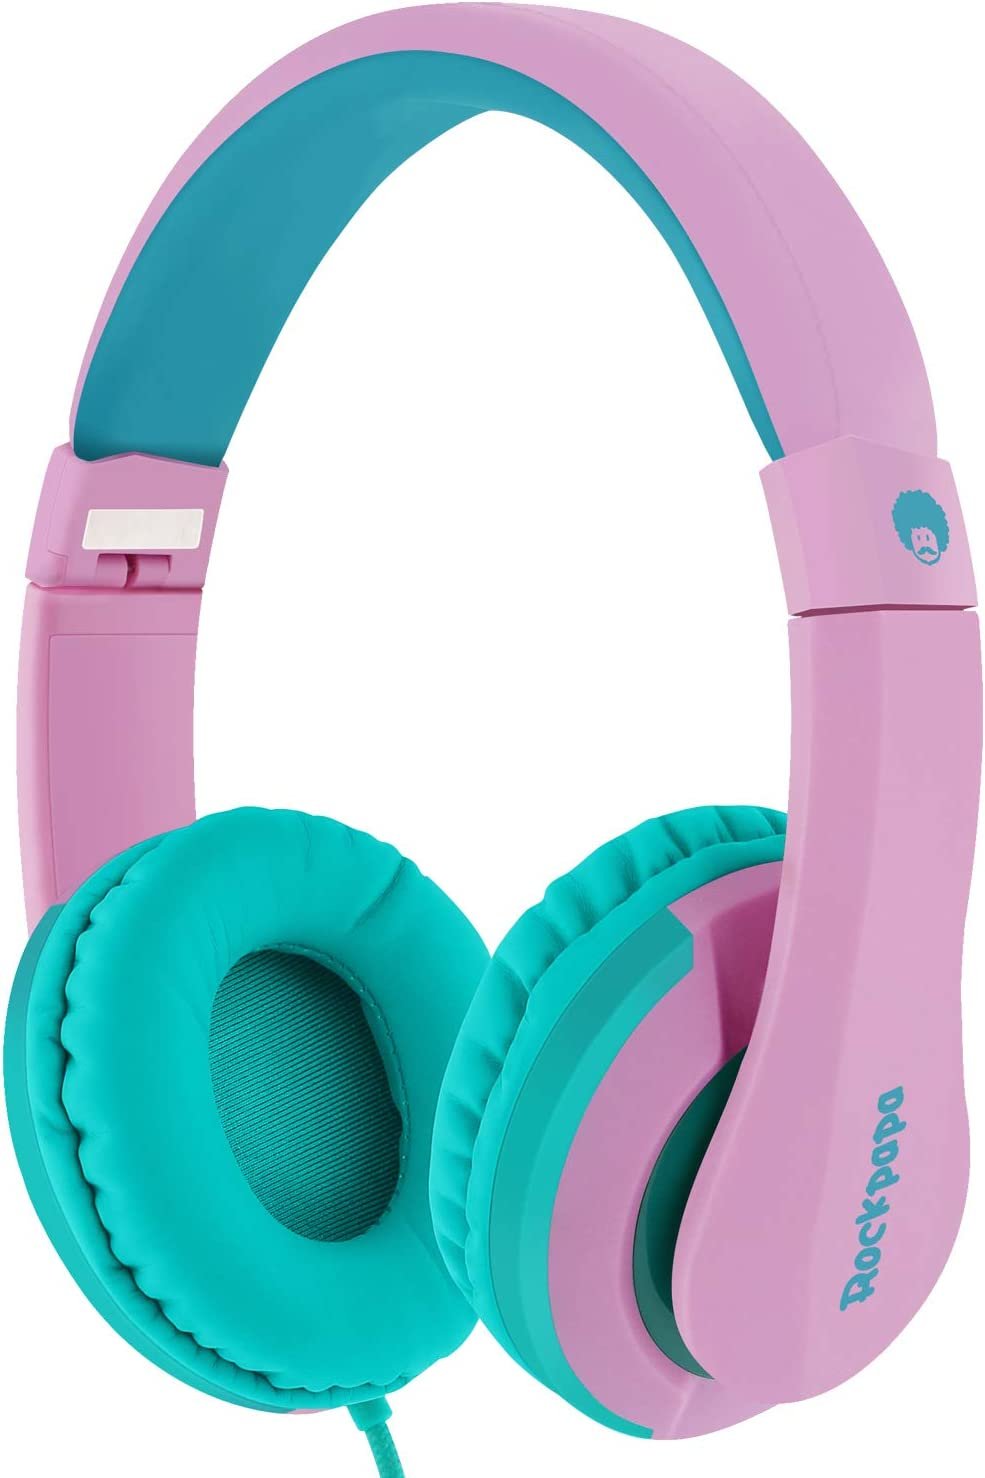 ROCKPAPA I22 Foldable Adjustable On Ear Headphones with Microphone for Kids/Adults iPhone iPad iPod Tablets MP3/4 DVD Computer Pink Green